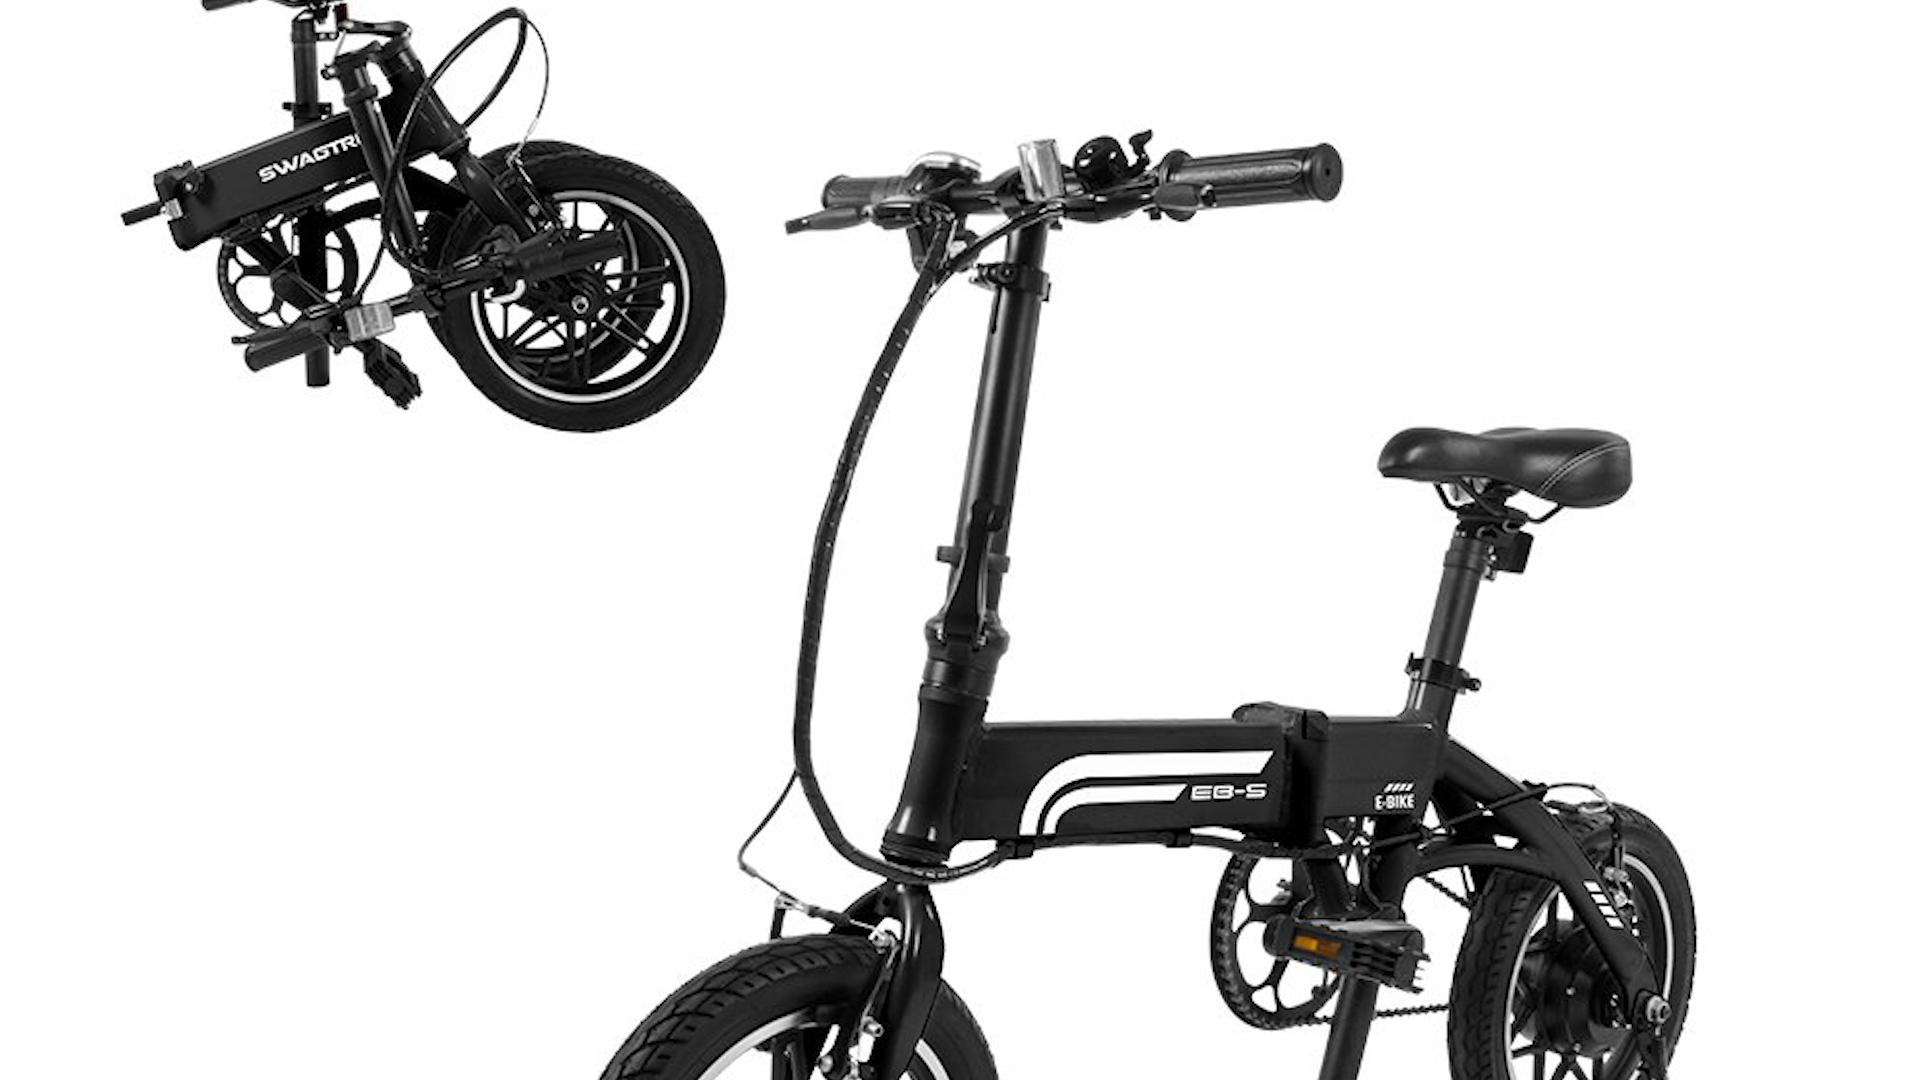 Flipboard The Swagtron Eb 5 Pro Is A Foldable Electric Bicycle